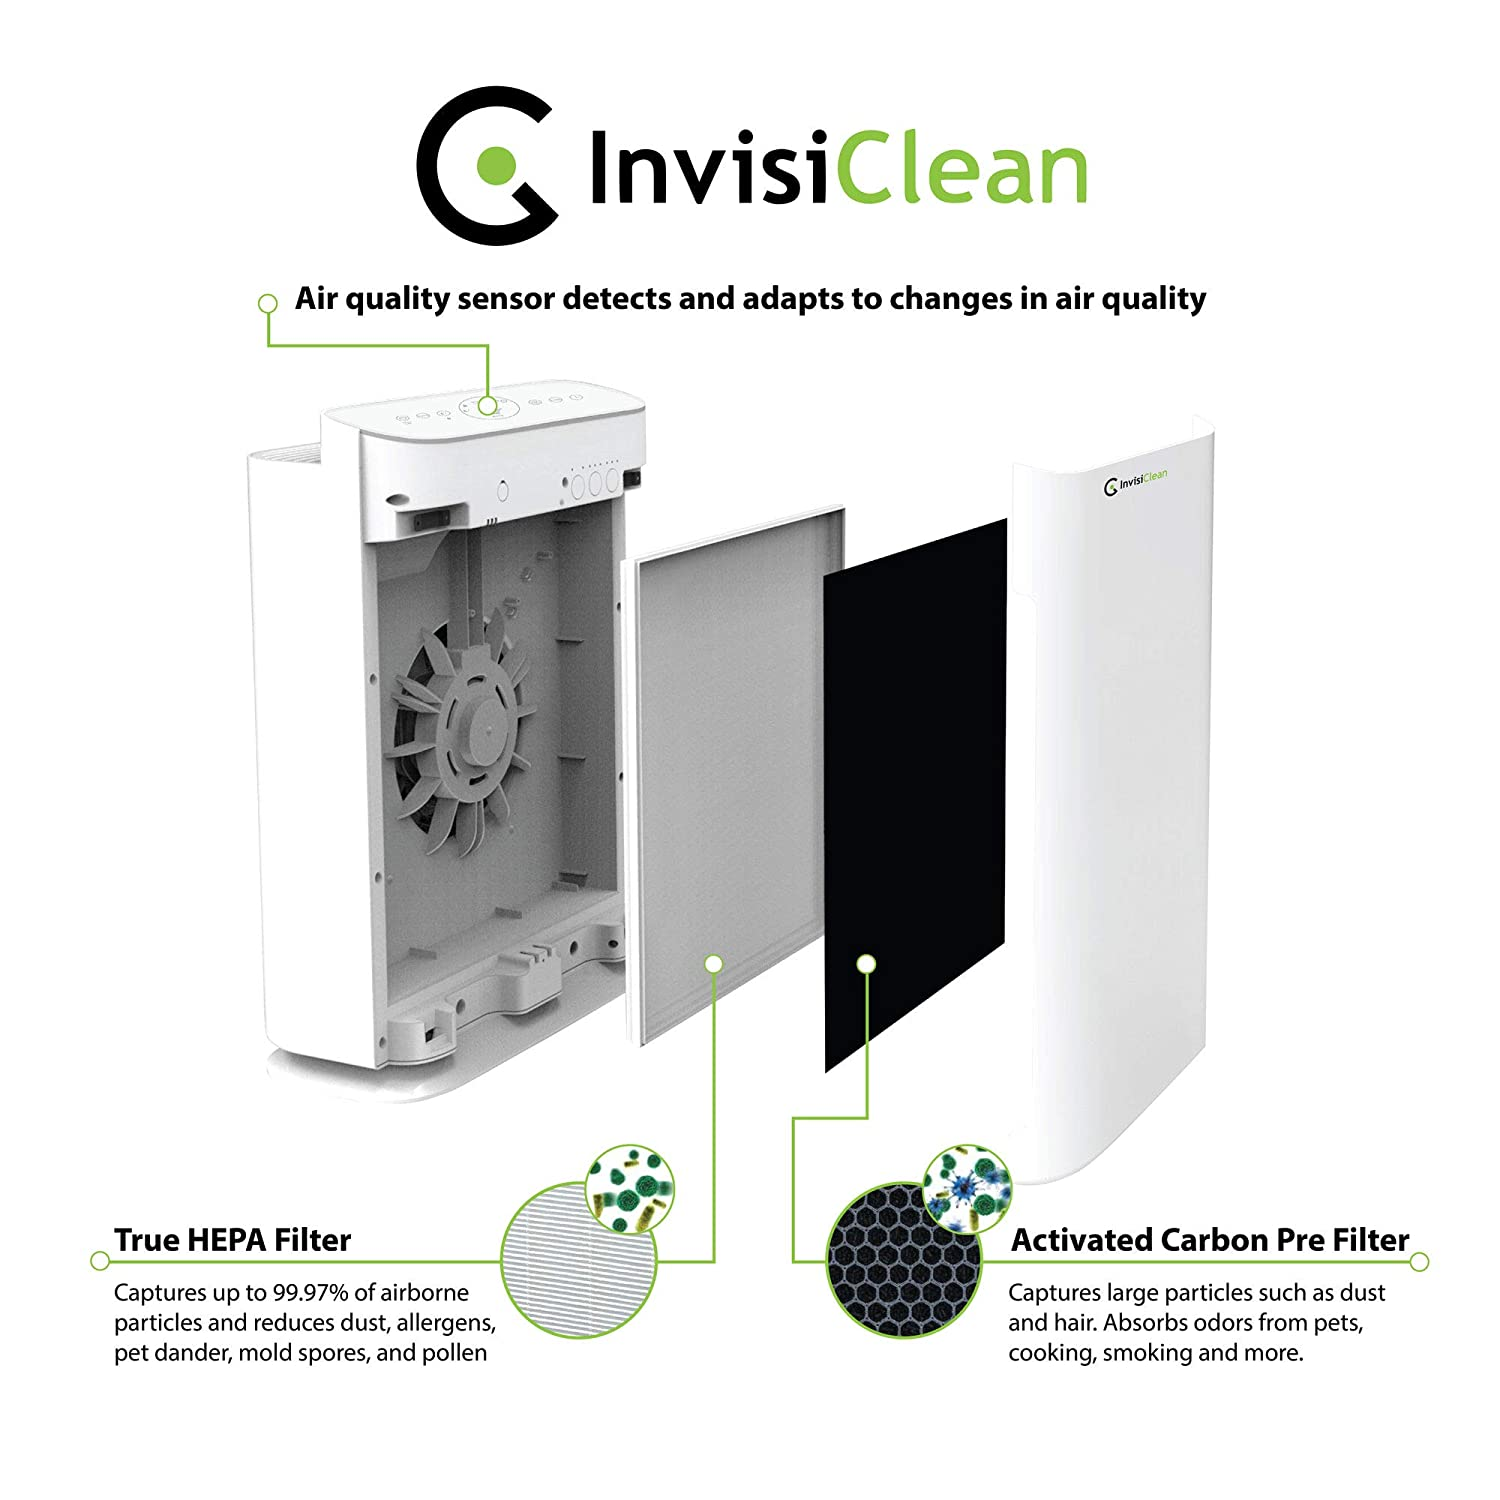 invisiclean sensa review